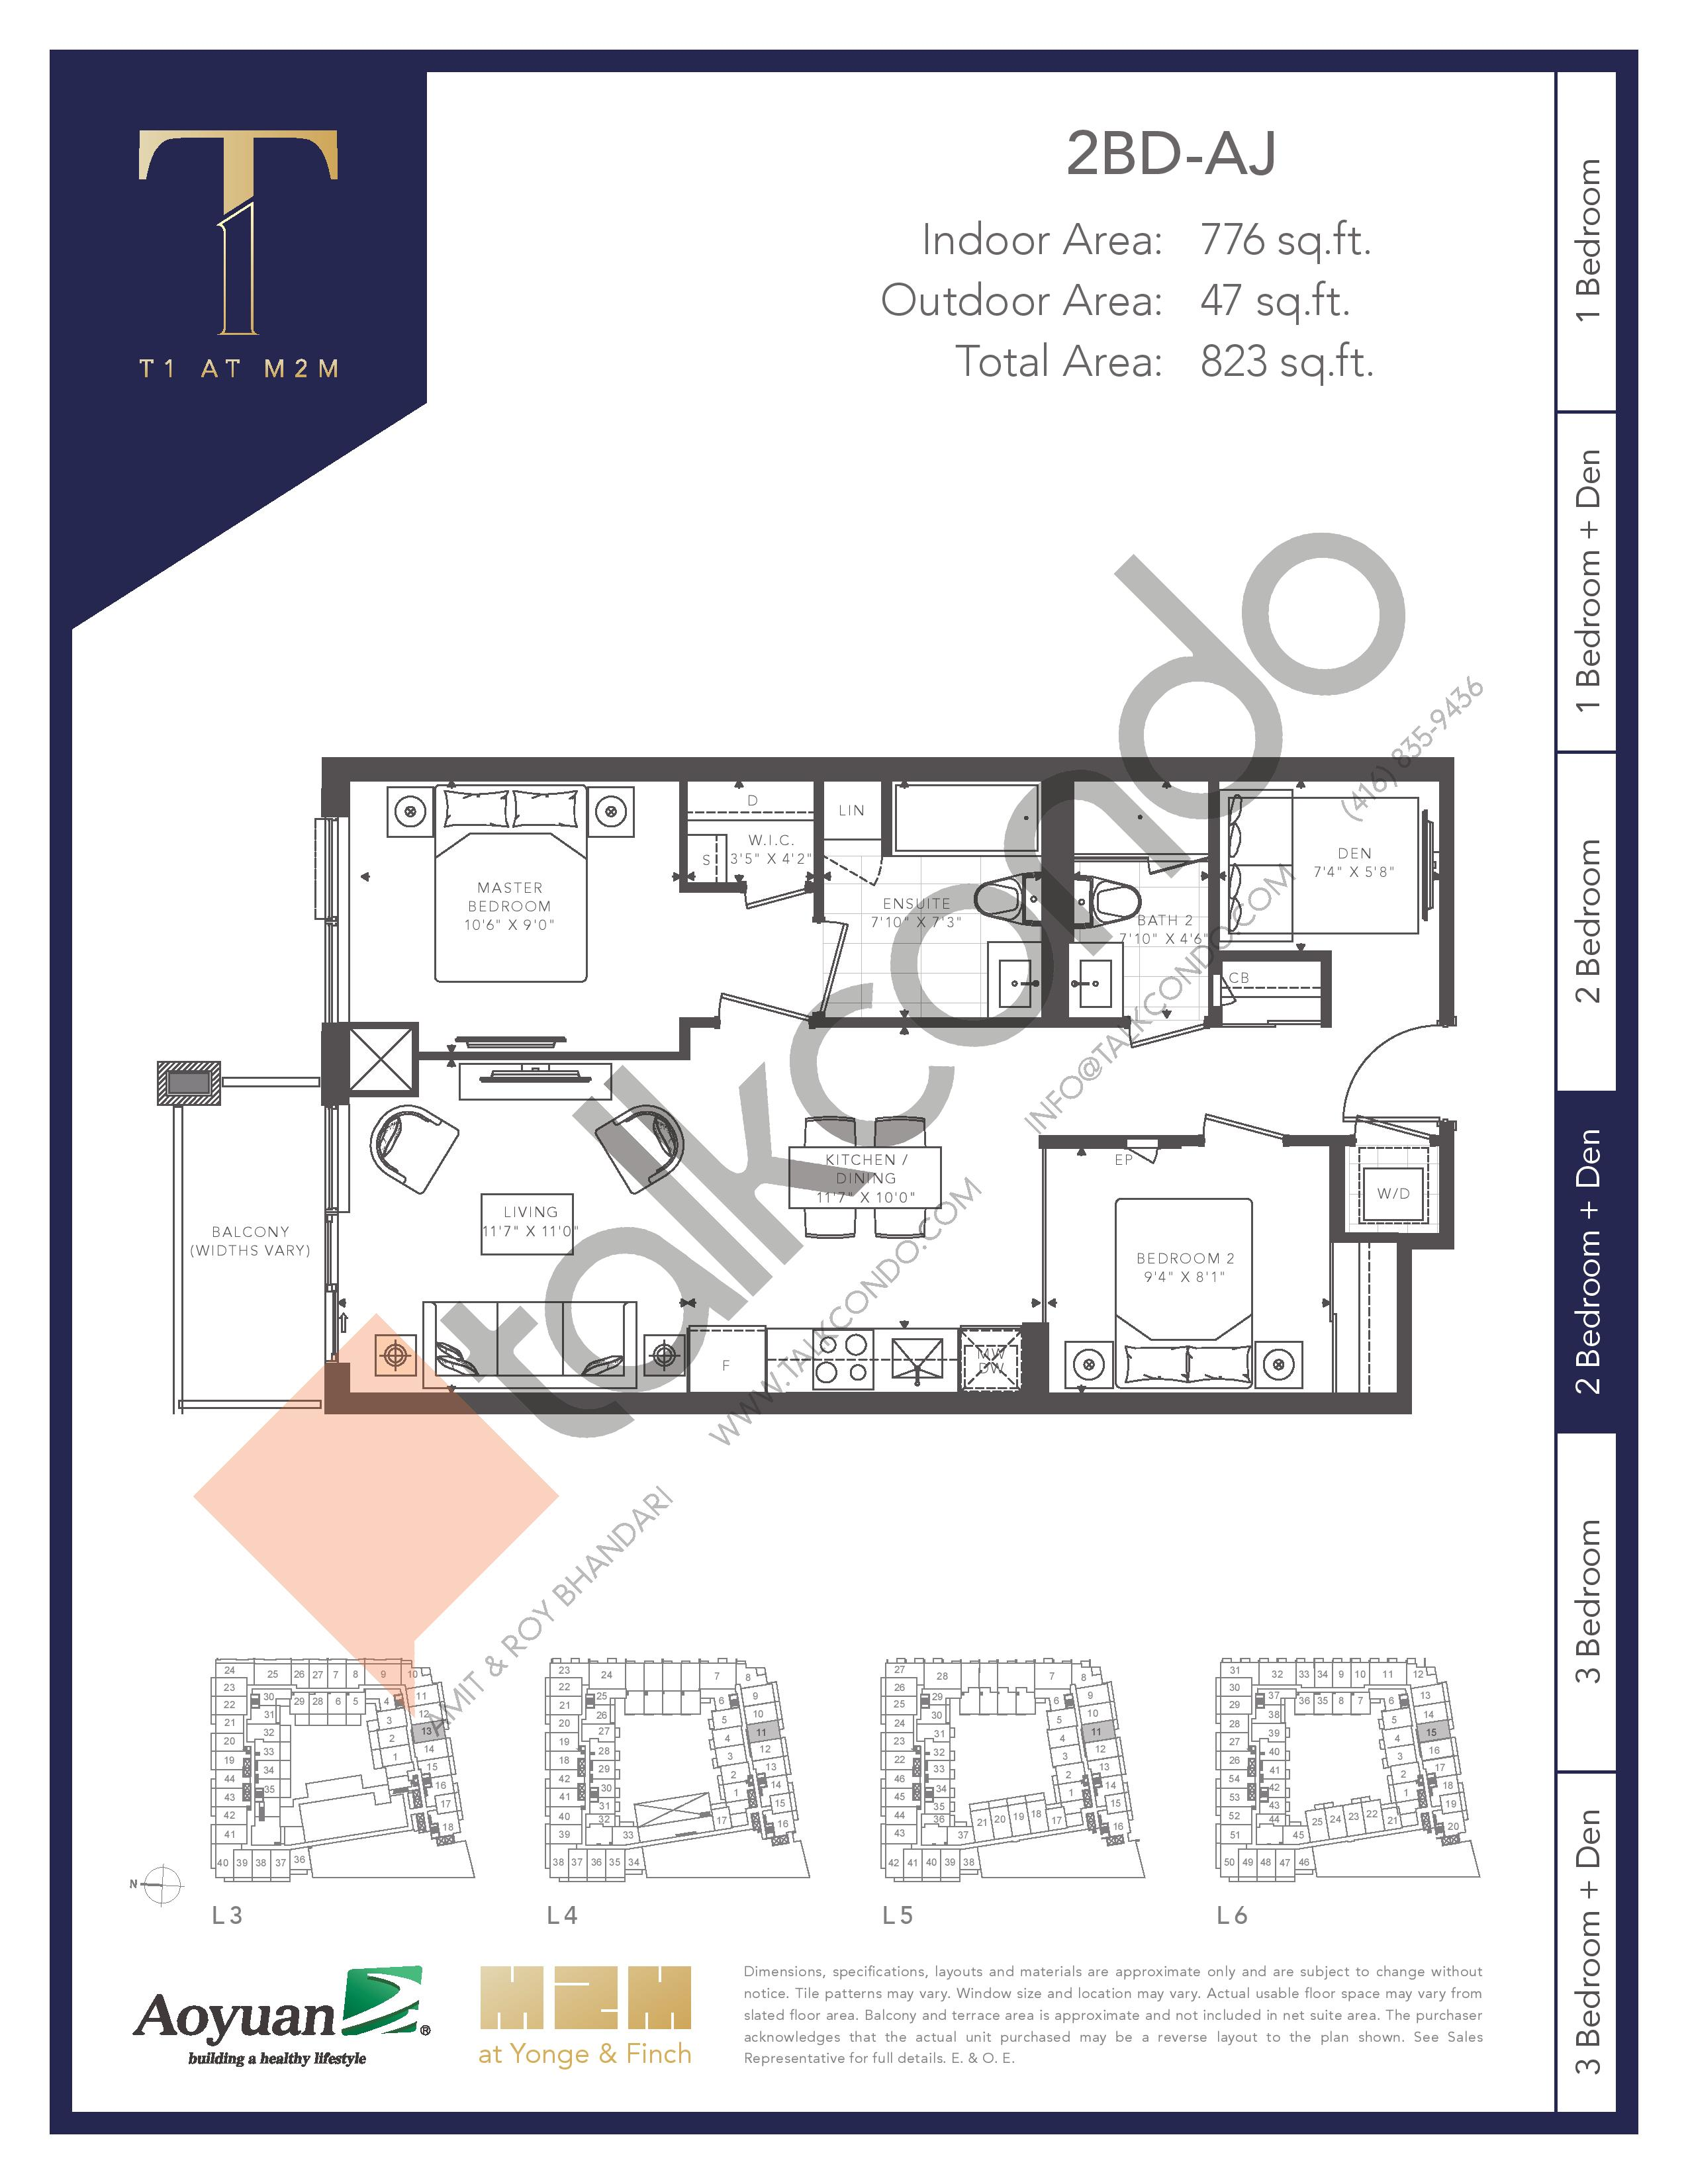 2BD-AJ (Tower) Floor Plan at T1 at M2M Condos - 776 sq.ft